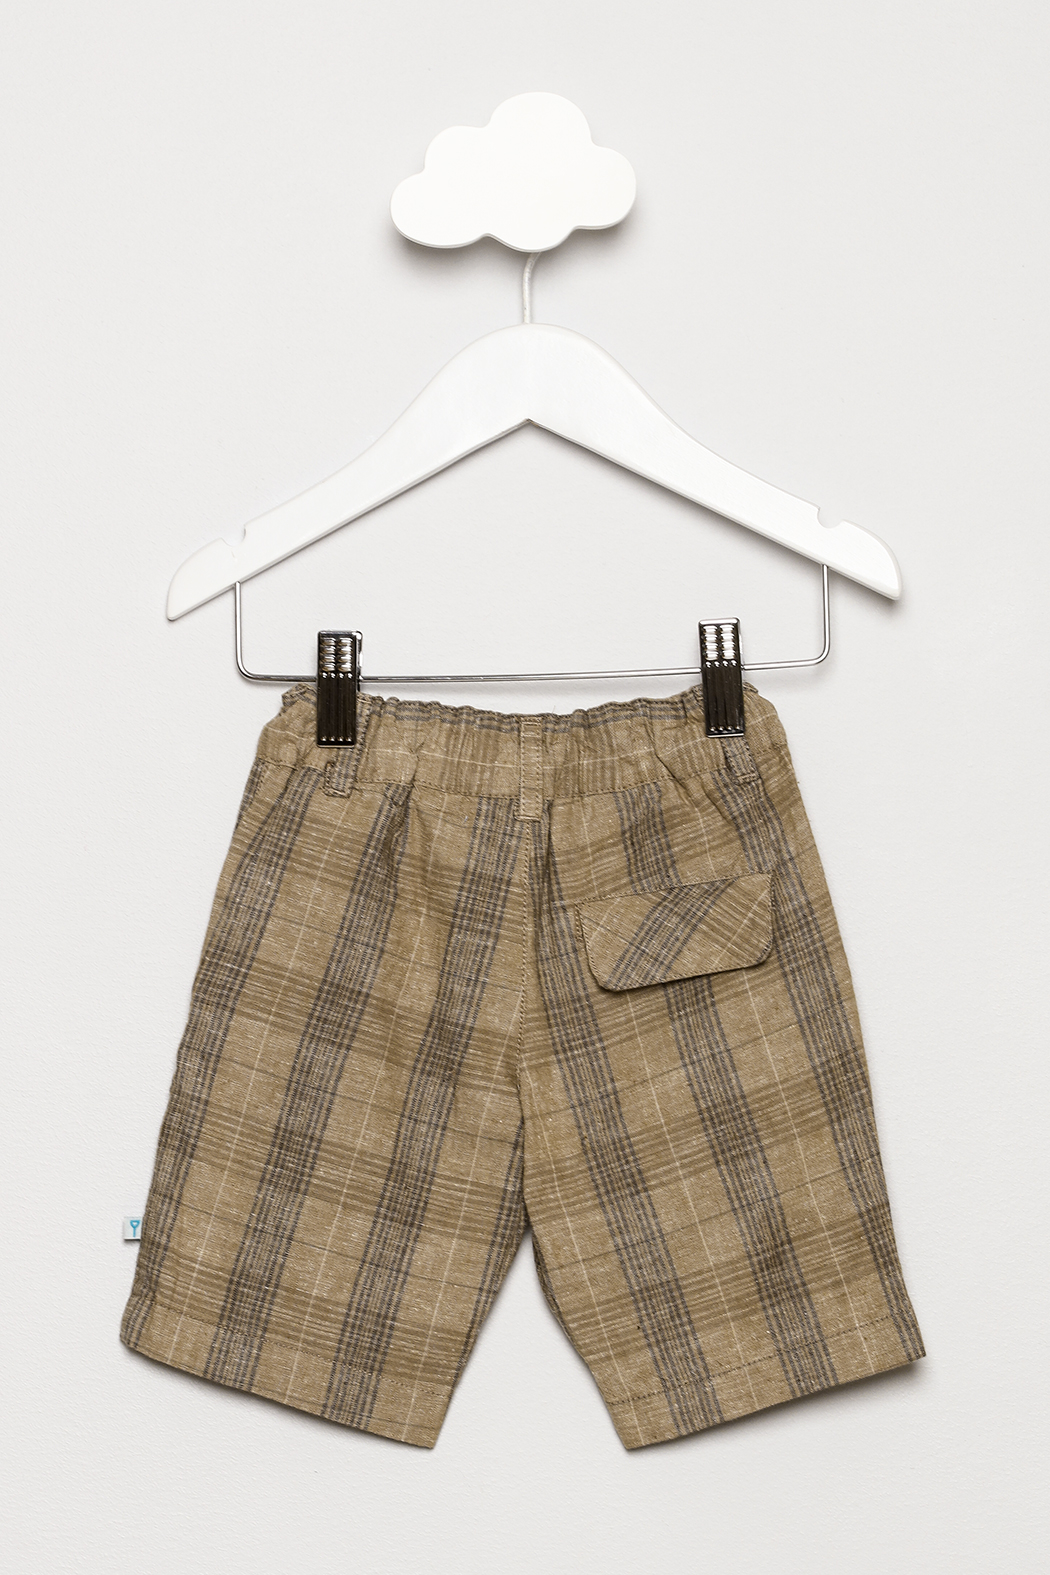 FORE Tan Plaid Shorts - Back Cropped Image